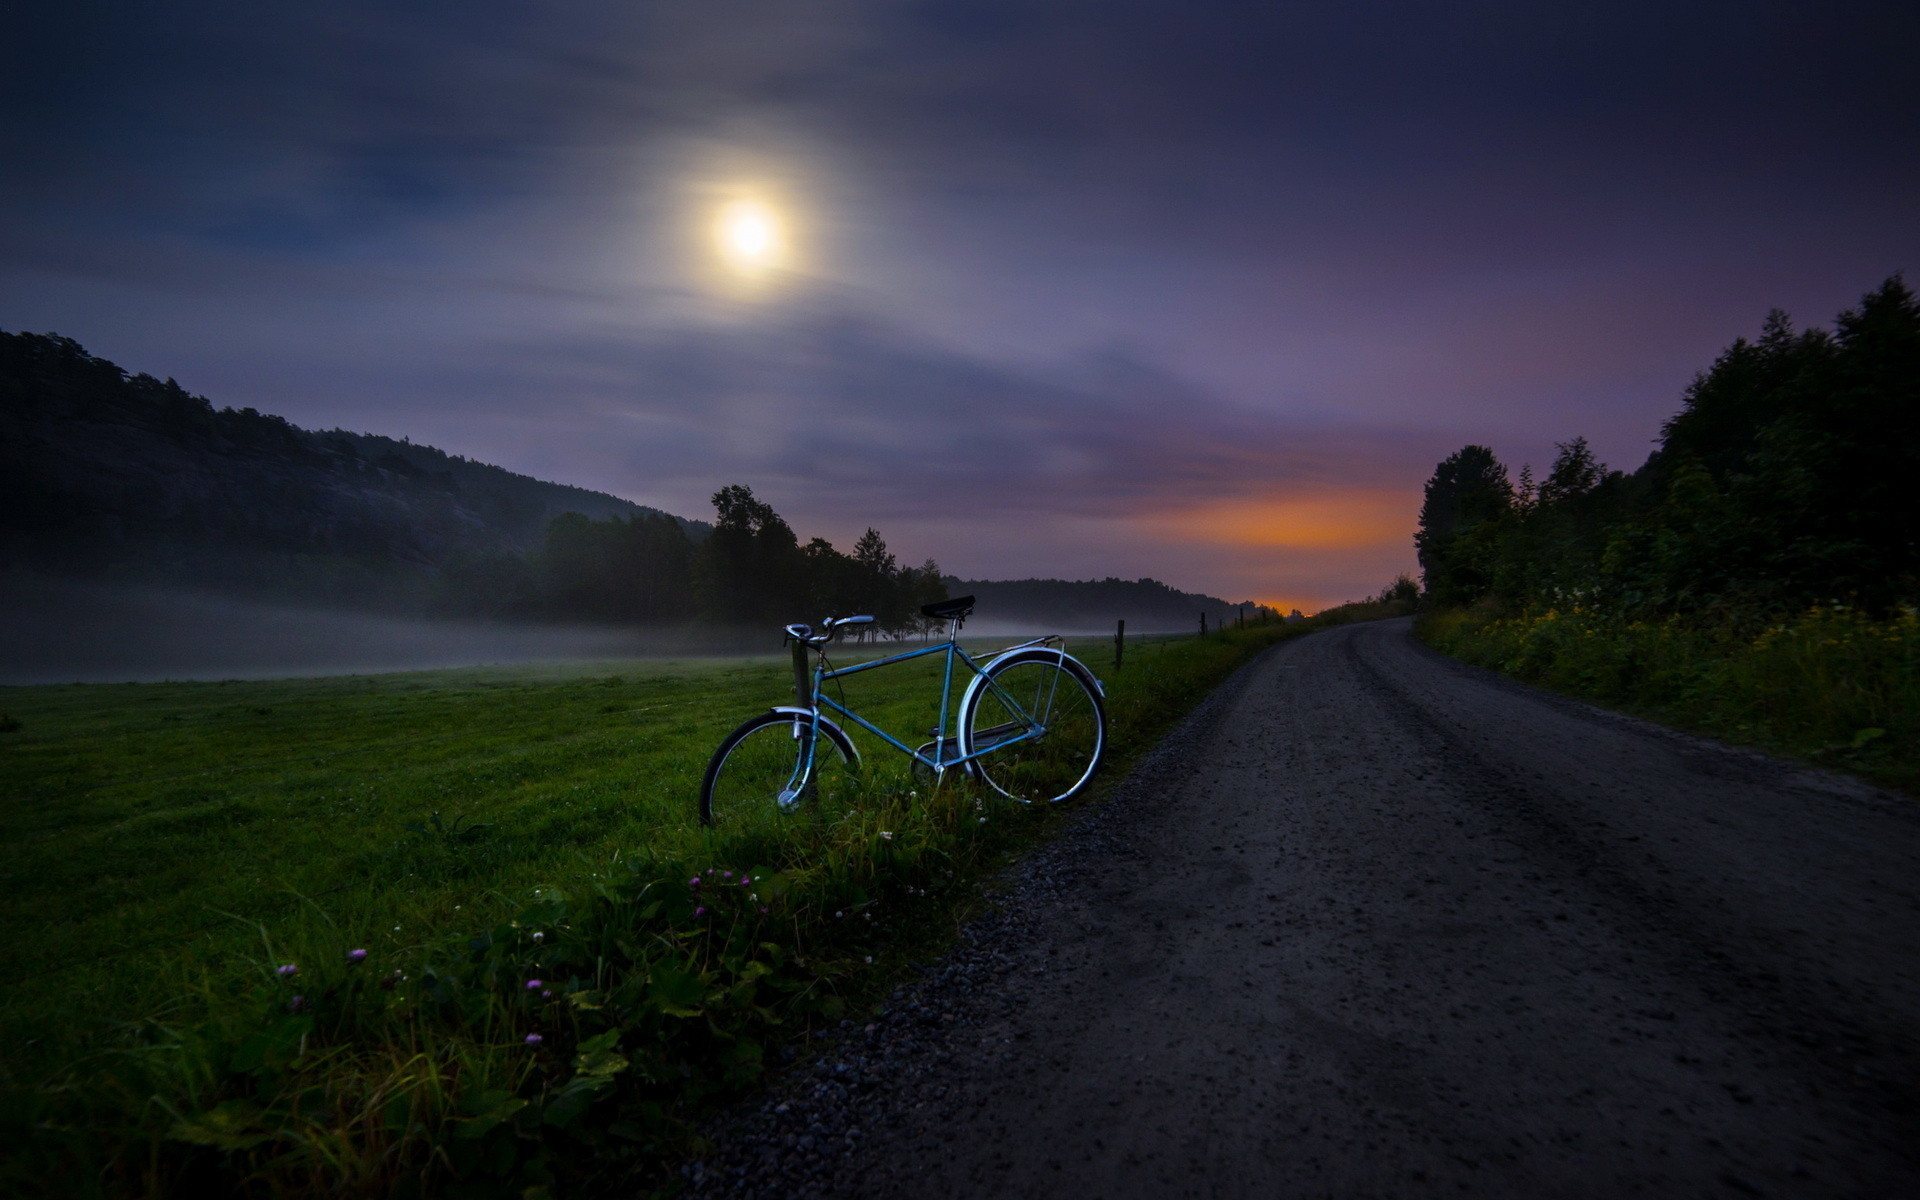 Morning View Countryside Road Wallpapers